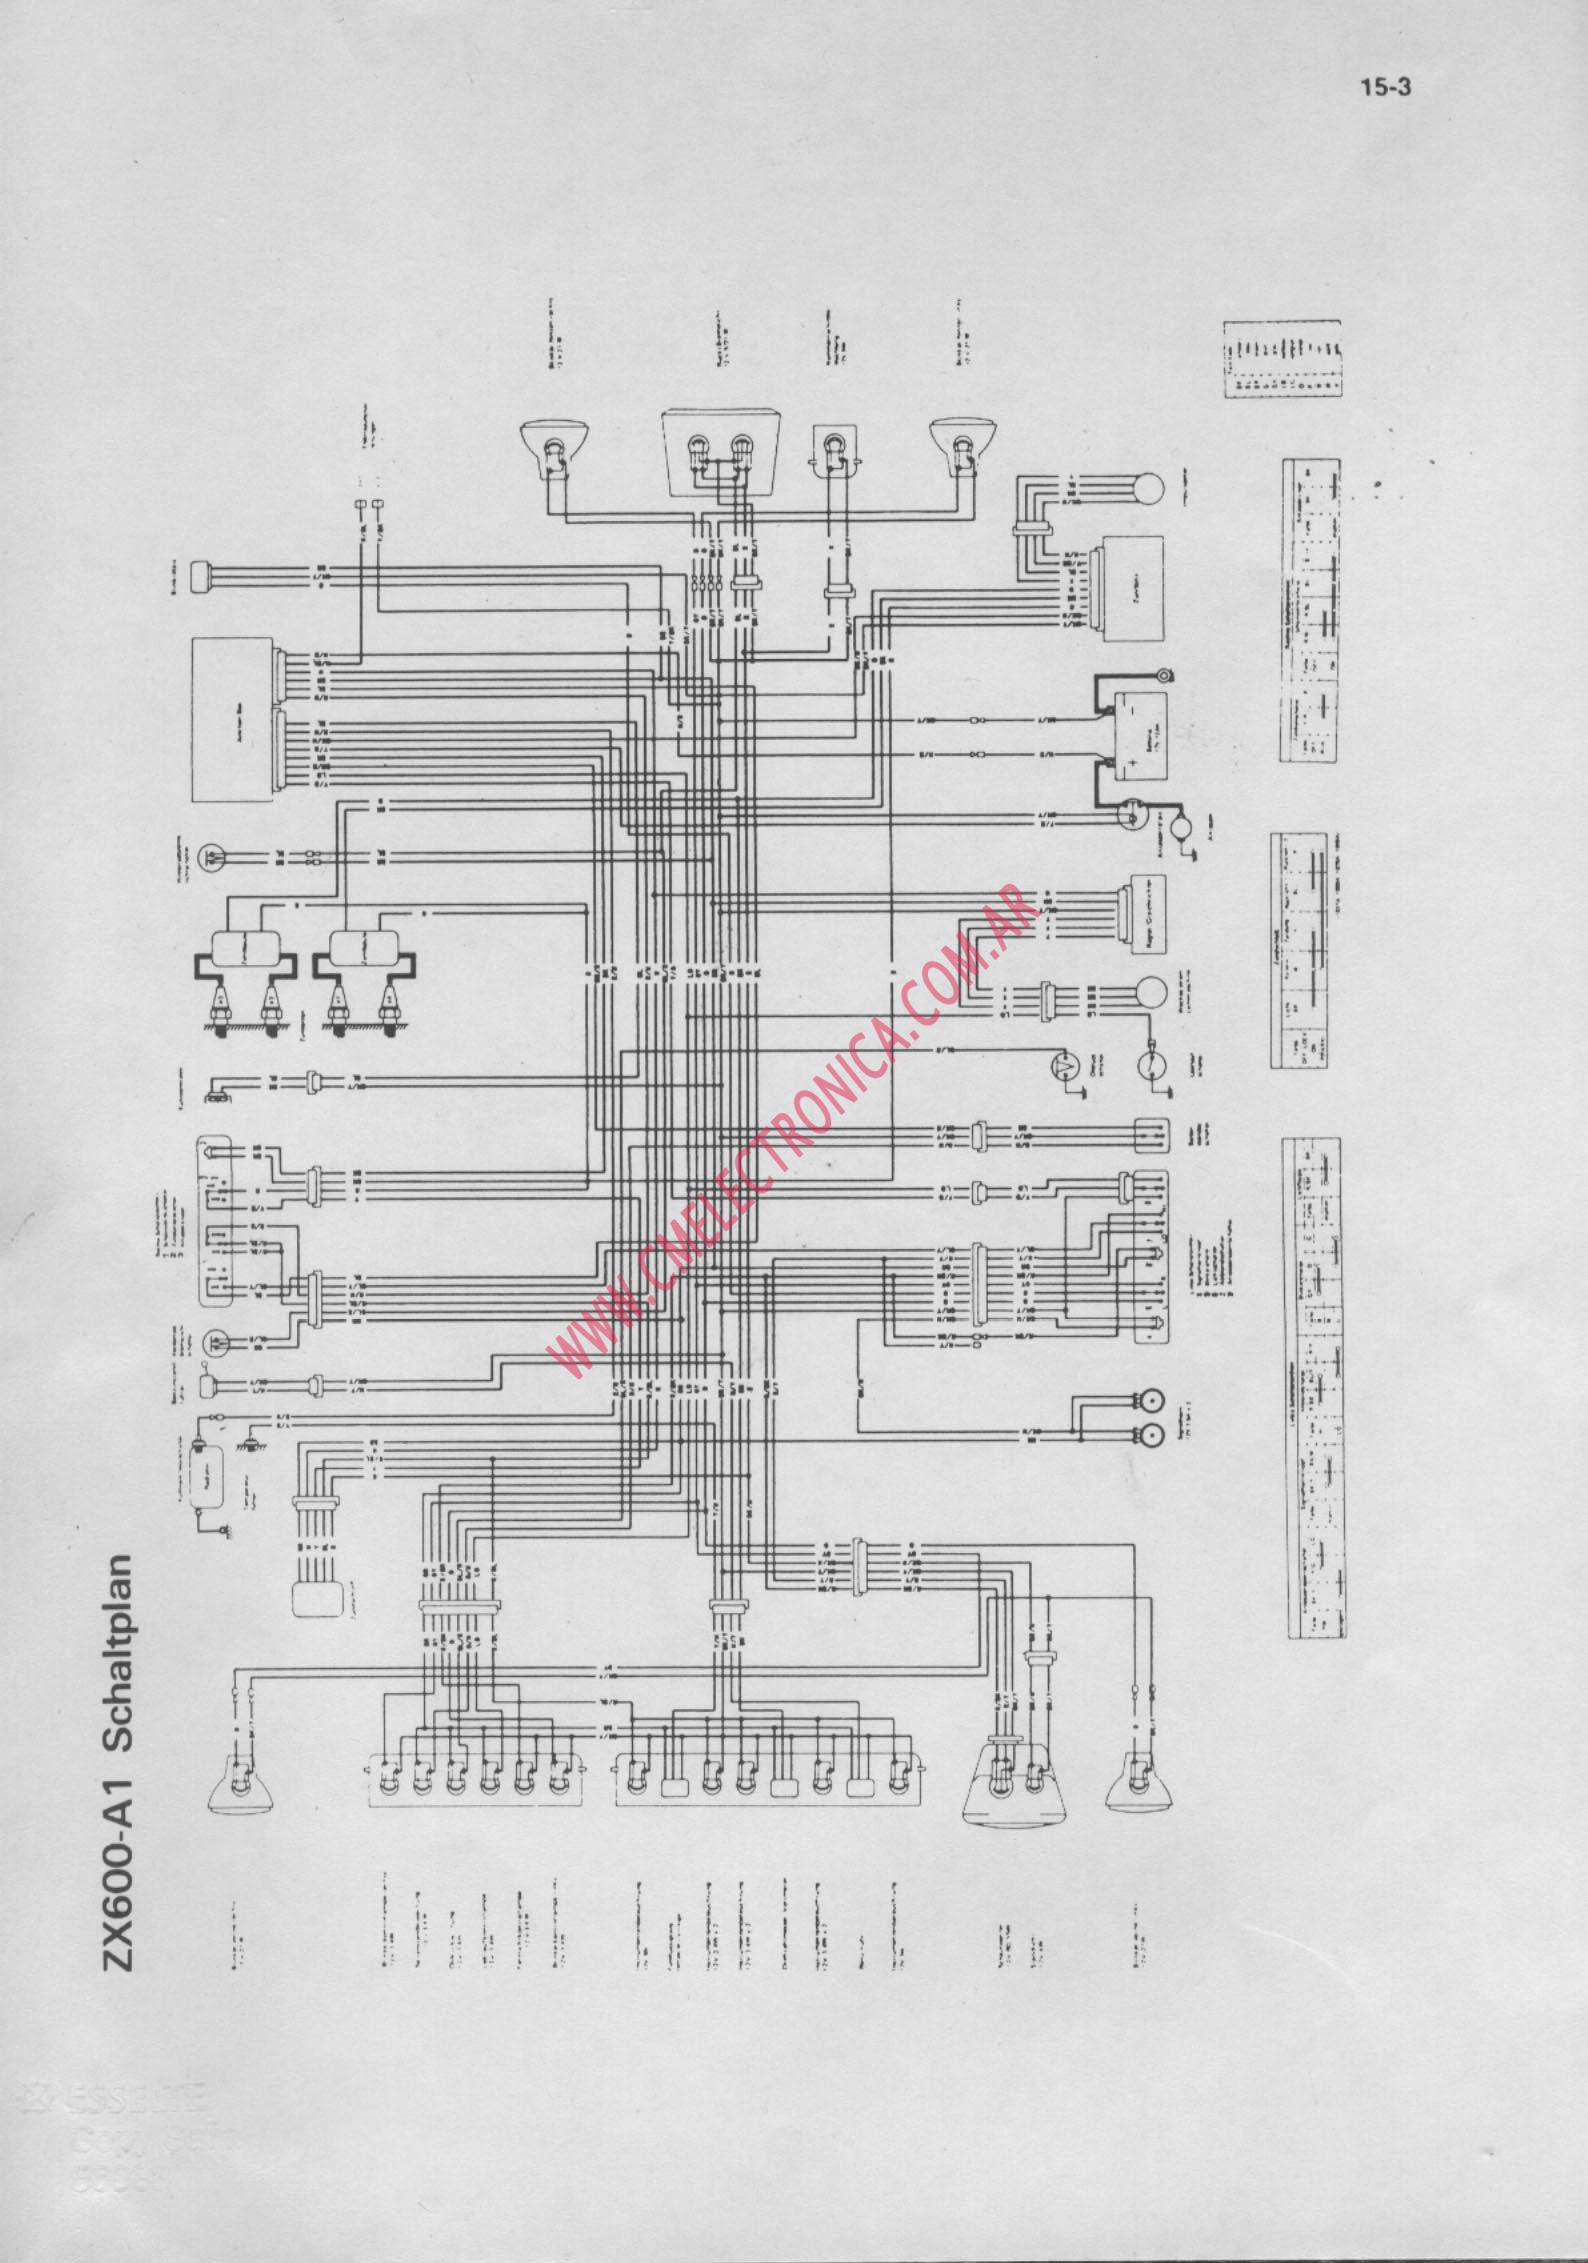 Kawasaki Ignition Switch Wiring Diagram Will Be A 550 Mule Get Free Image